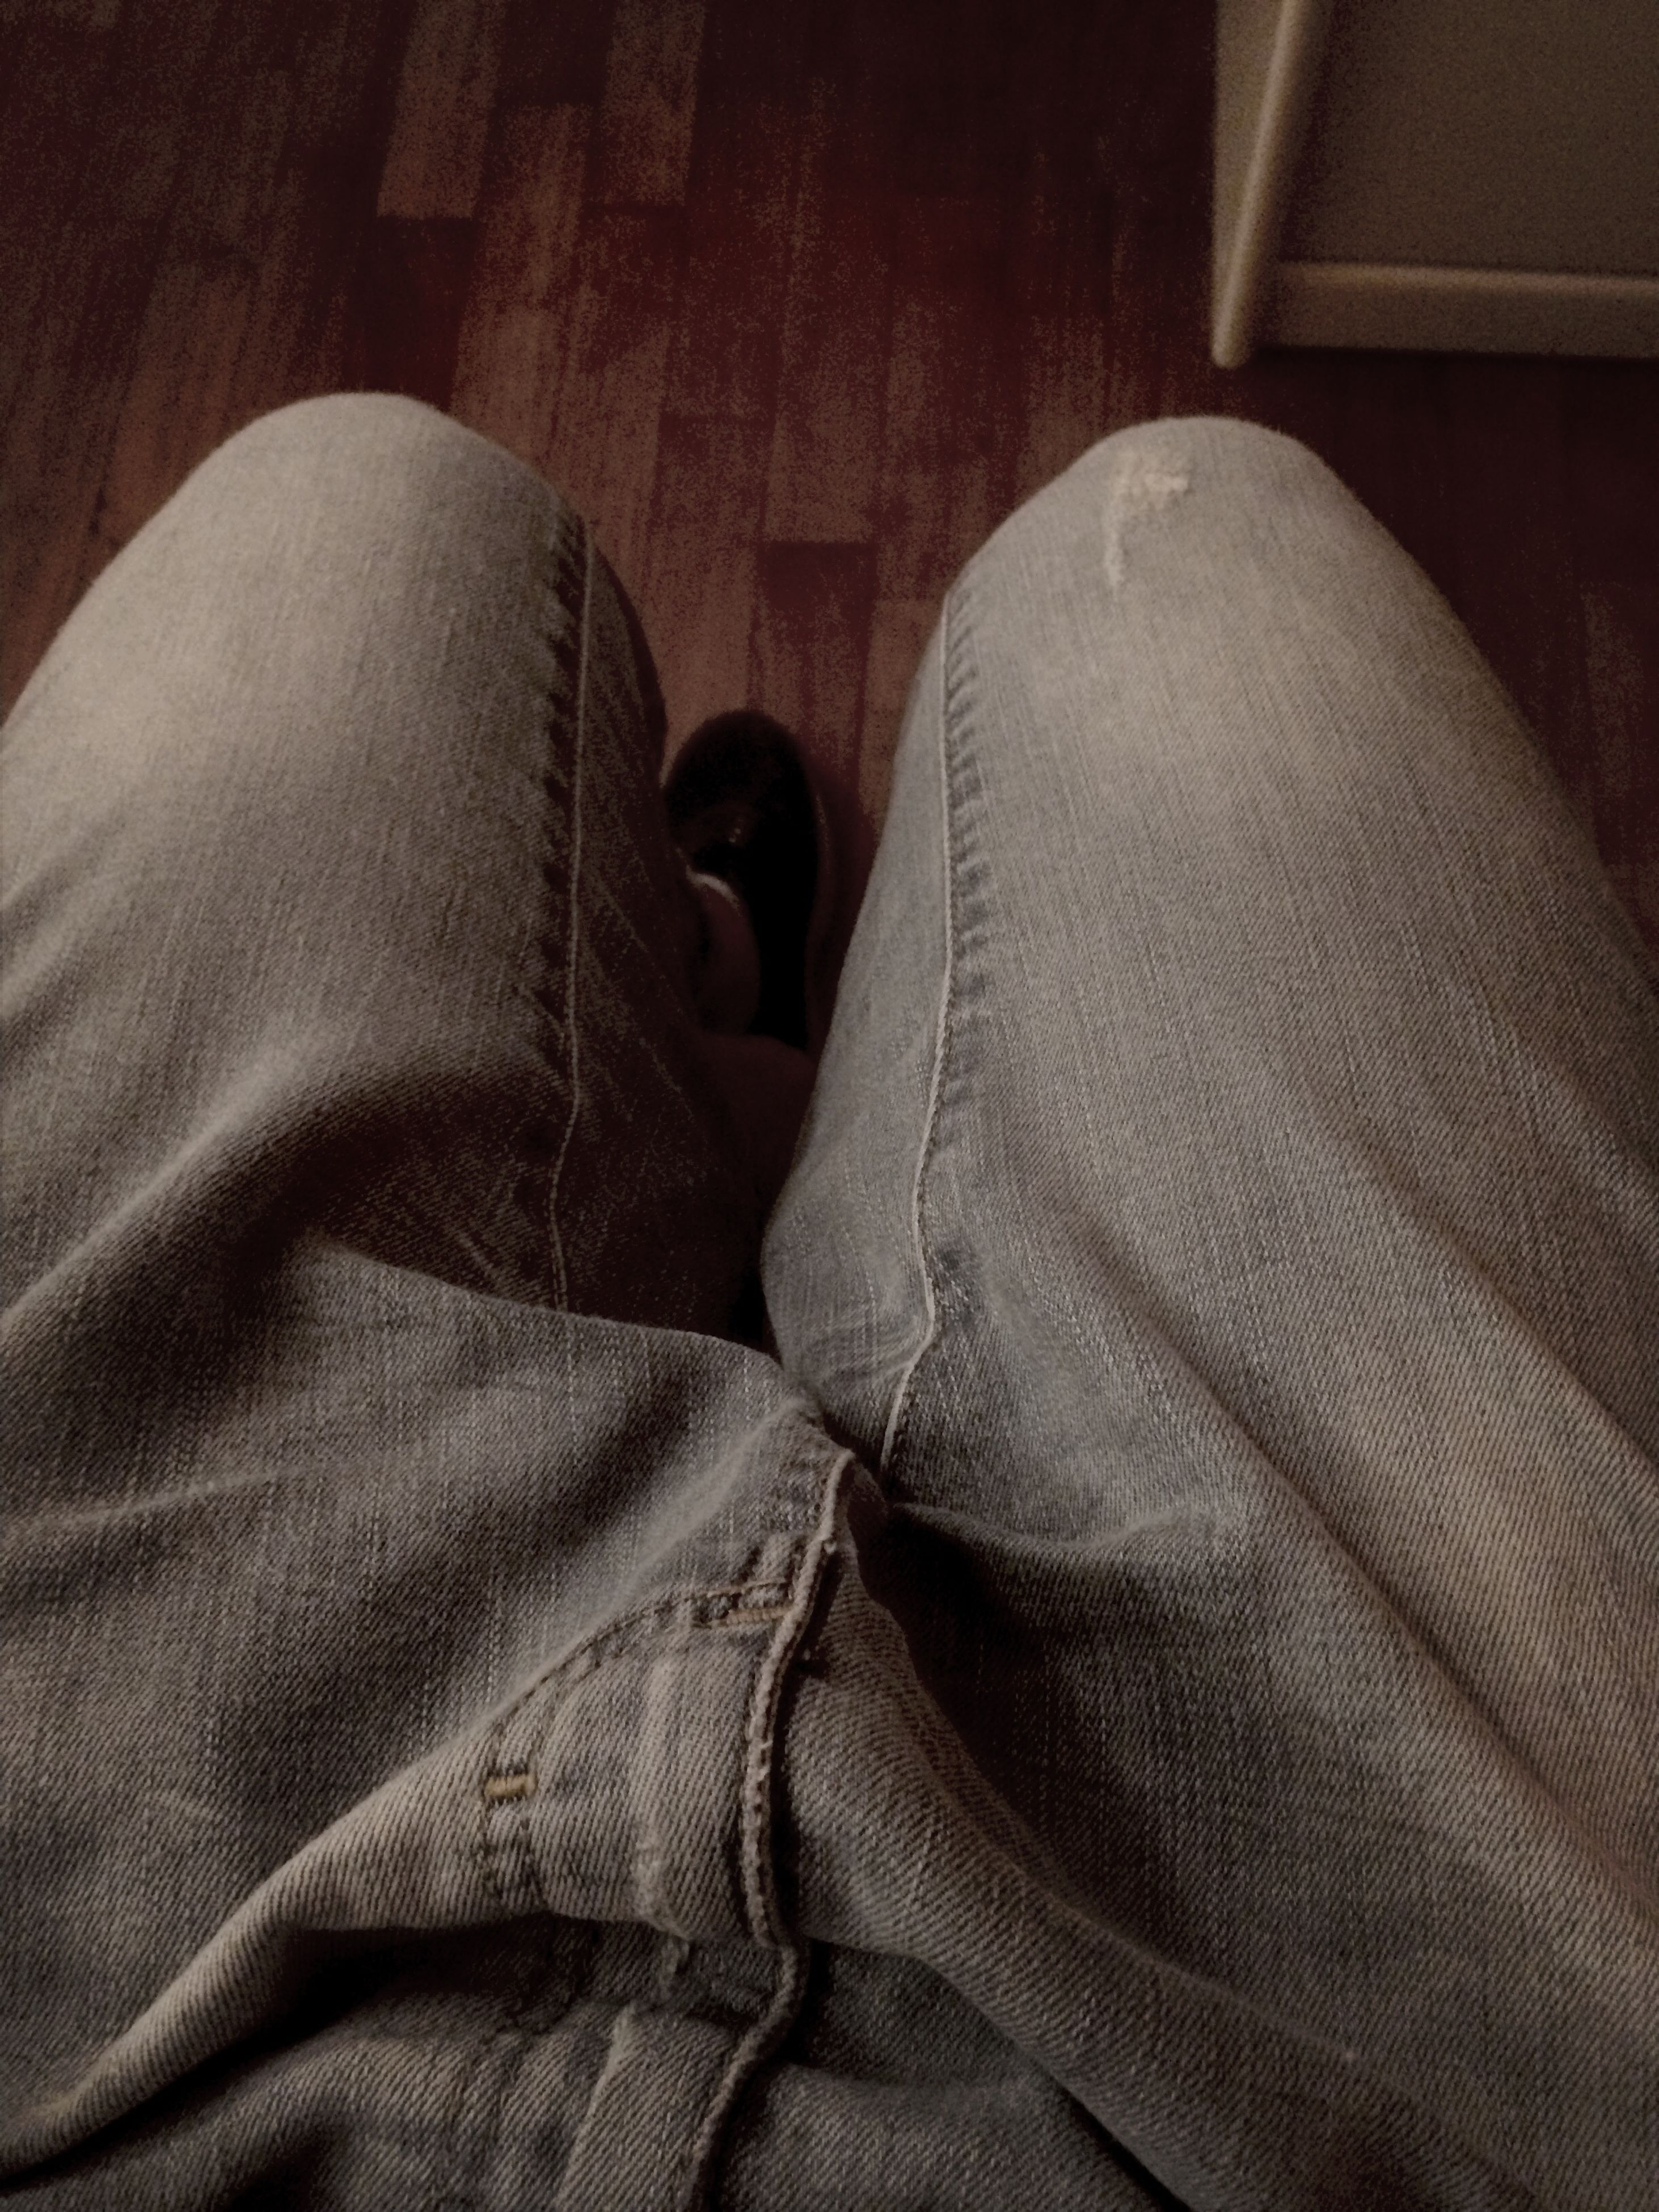 indoors, jeans, textile, fabric, high angle view, person, close-up, bed, low section, relaxation, shoe, sofa, clothing, men, comfortable, sheet, casual clothing, home interior